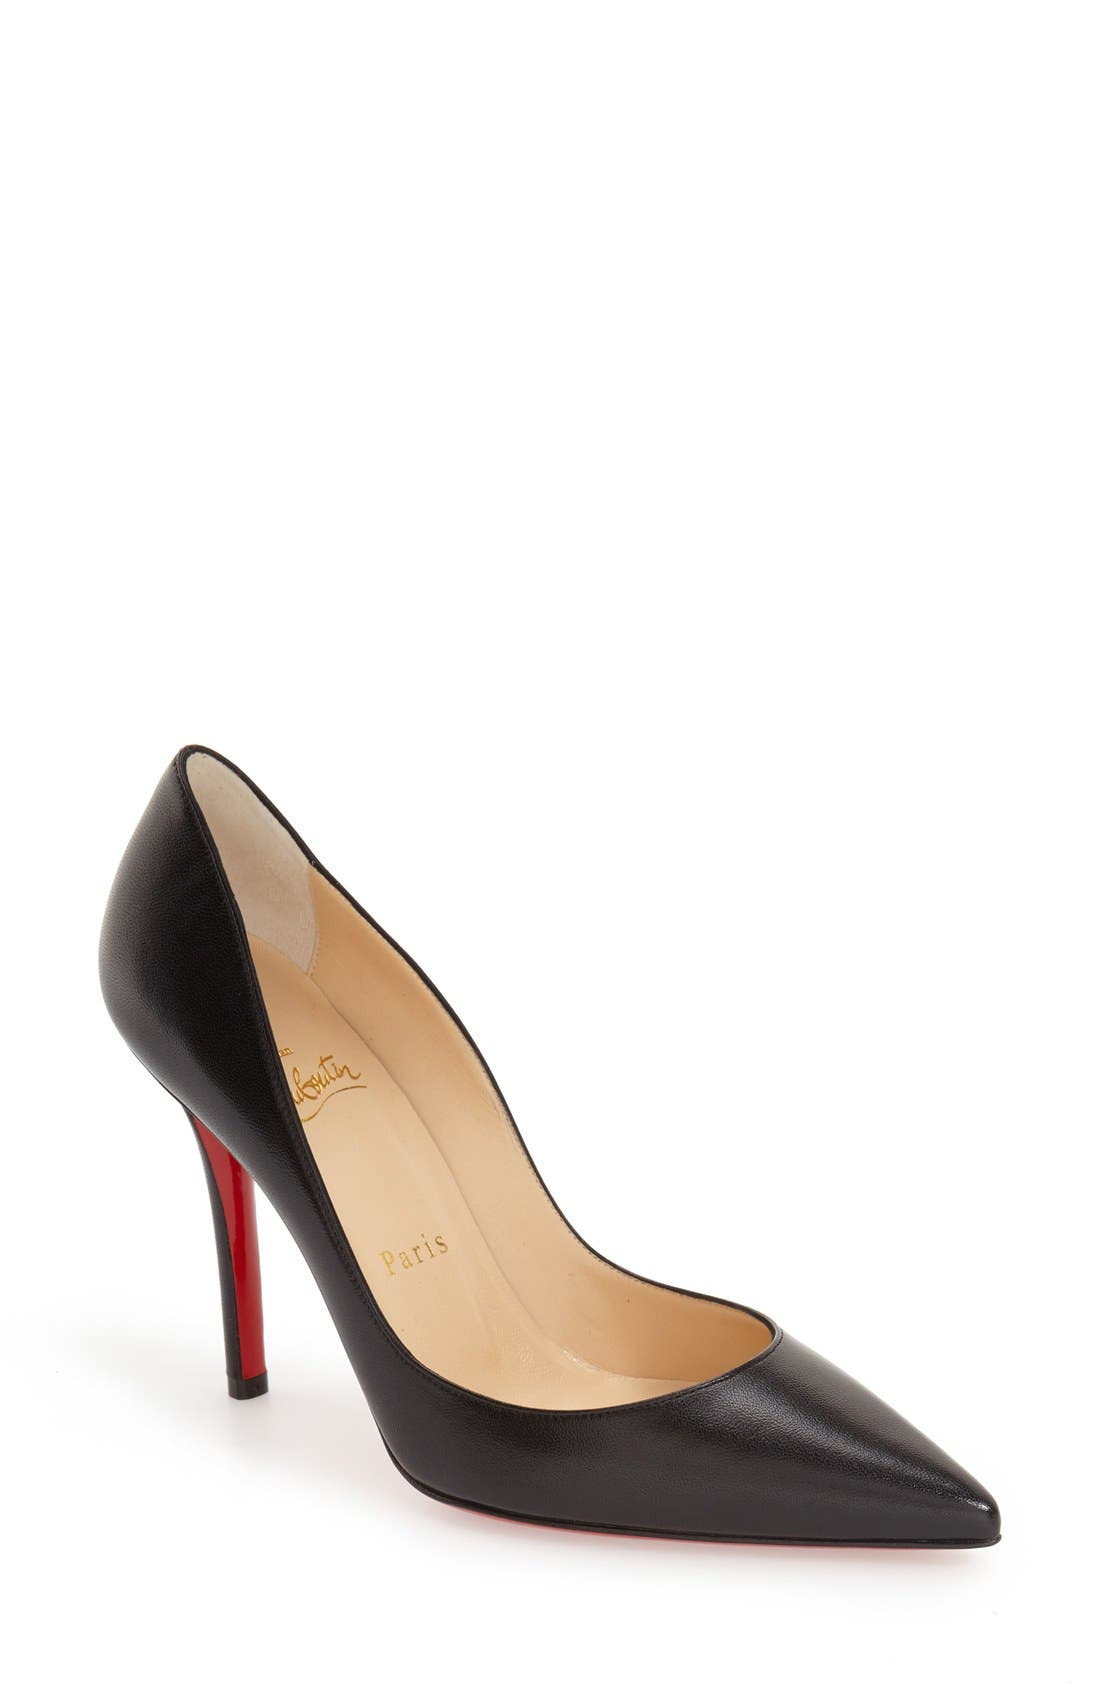 'Apostrophy' Pointy Toe Pump,                             Main thumbnail 3, color,